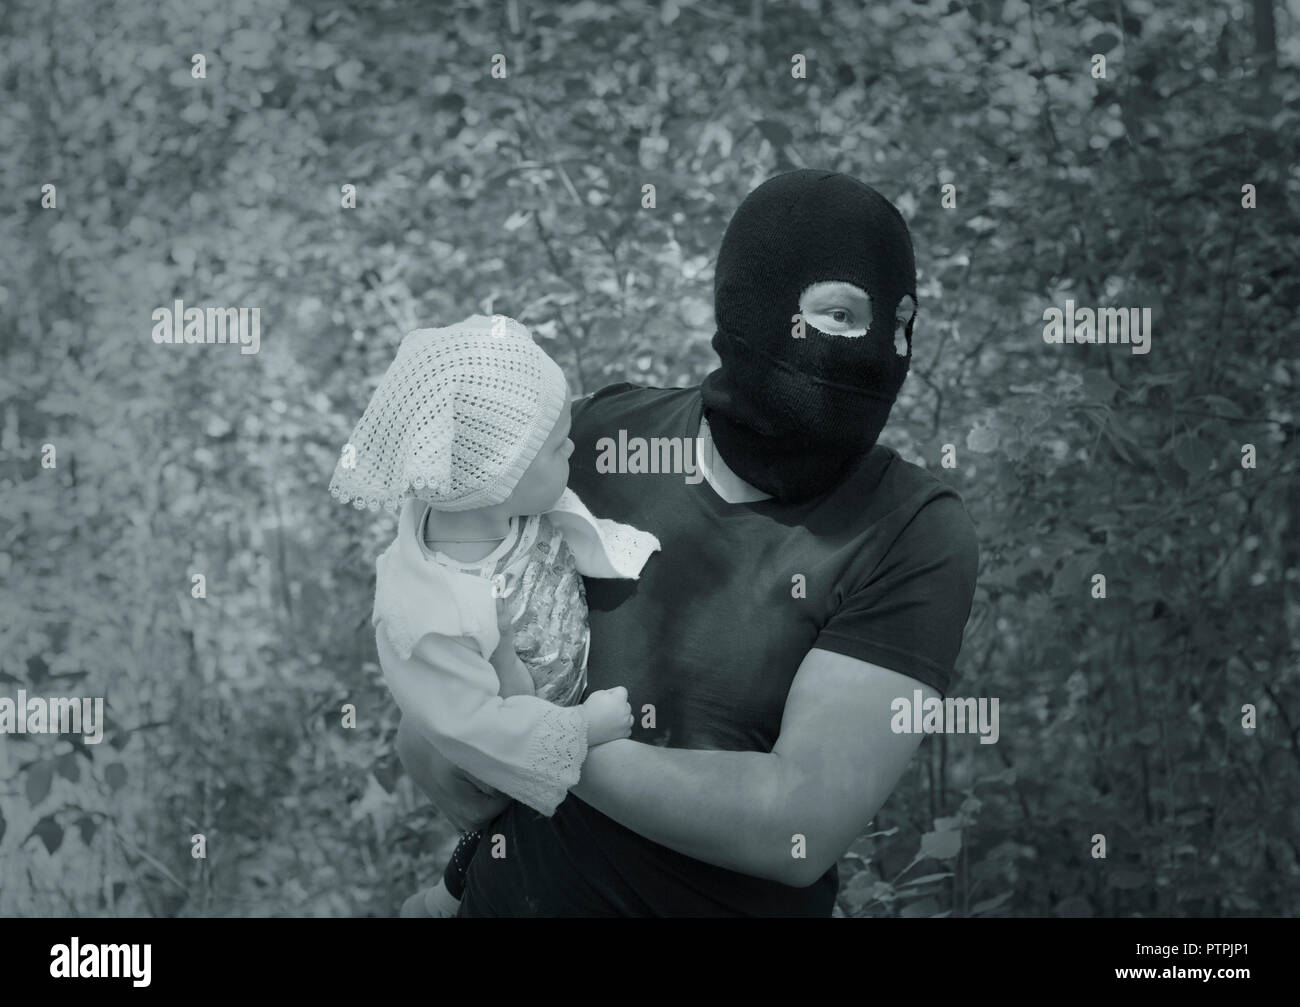 Kidnapping Stock Photos & Kidnapping Stock Images - Alamy